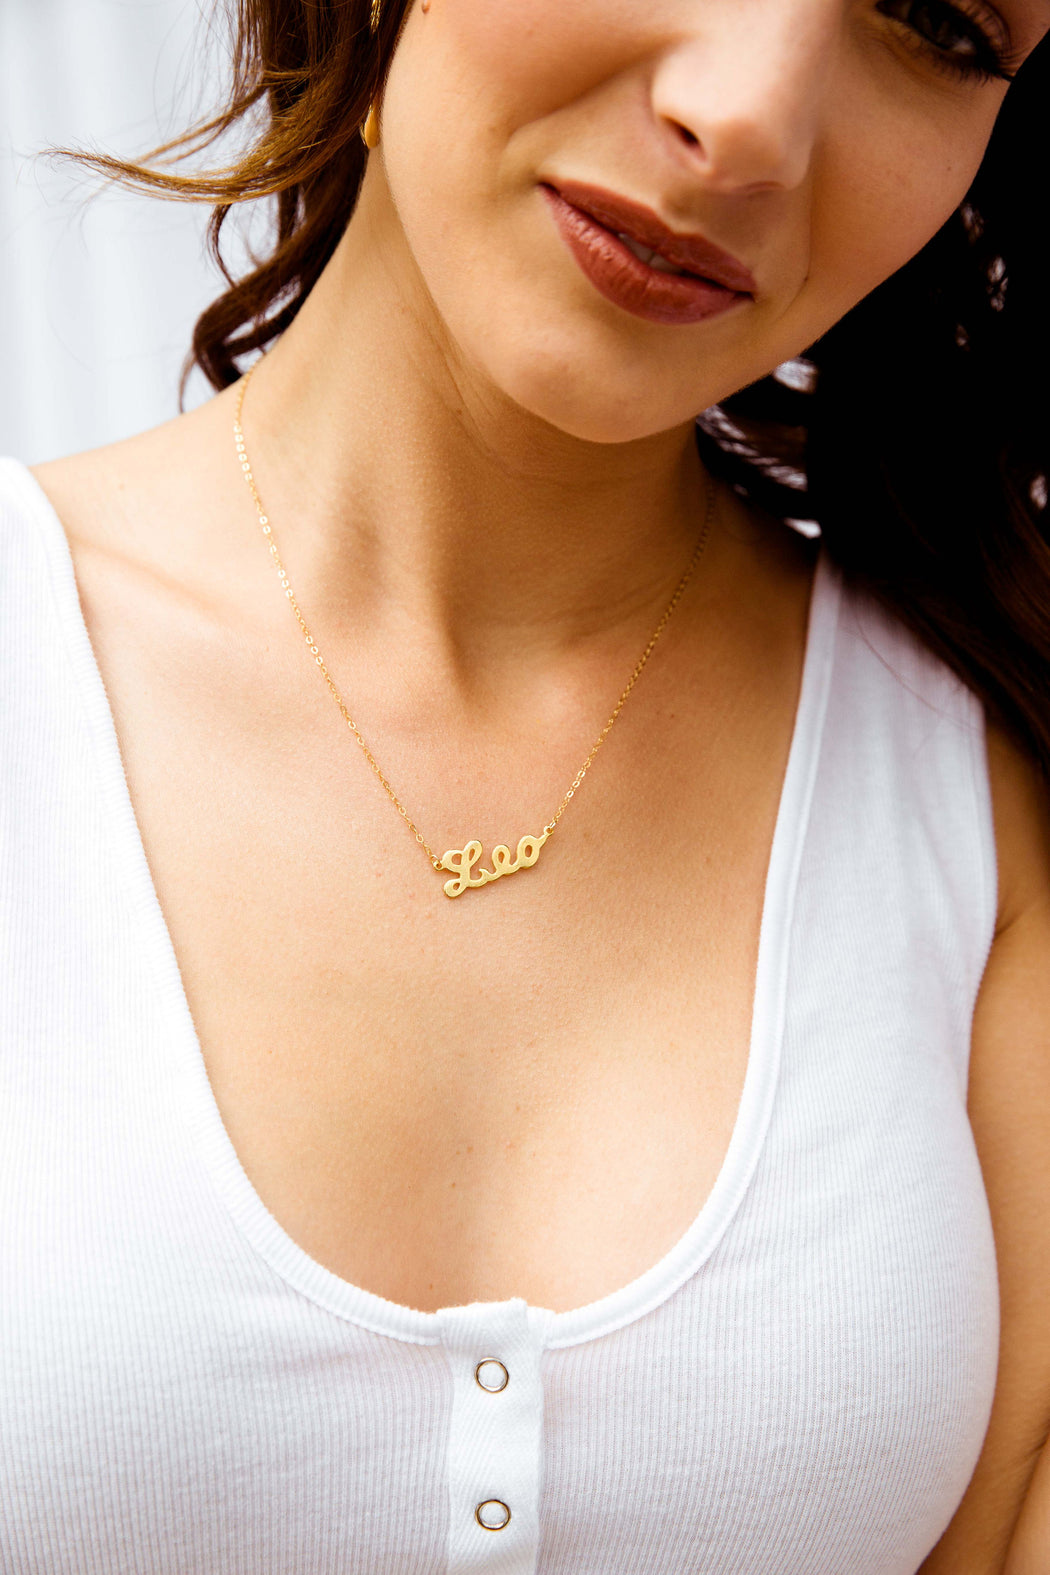 Star Sign Necklace - Leo